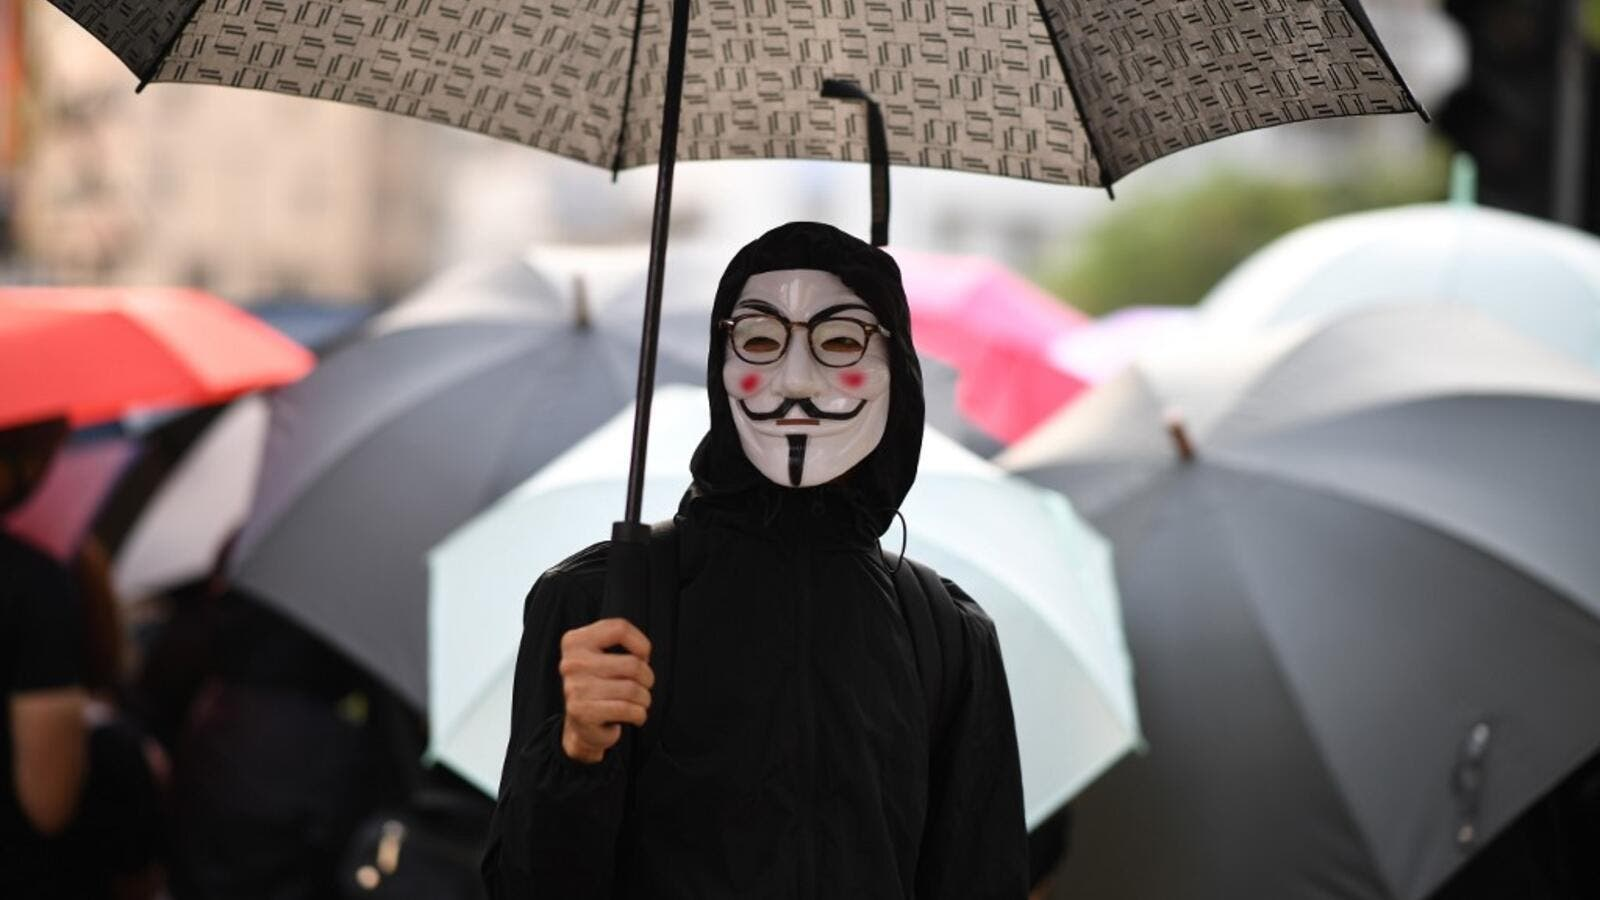 Hong Kong protesters arrested for defying a new face mask ban appeared in court on October 7 following a violent weekend of unrest which saw bloody clashes with police and widespread vandalism that crippled the city's train network. Mohd RASFAN / AFP